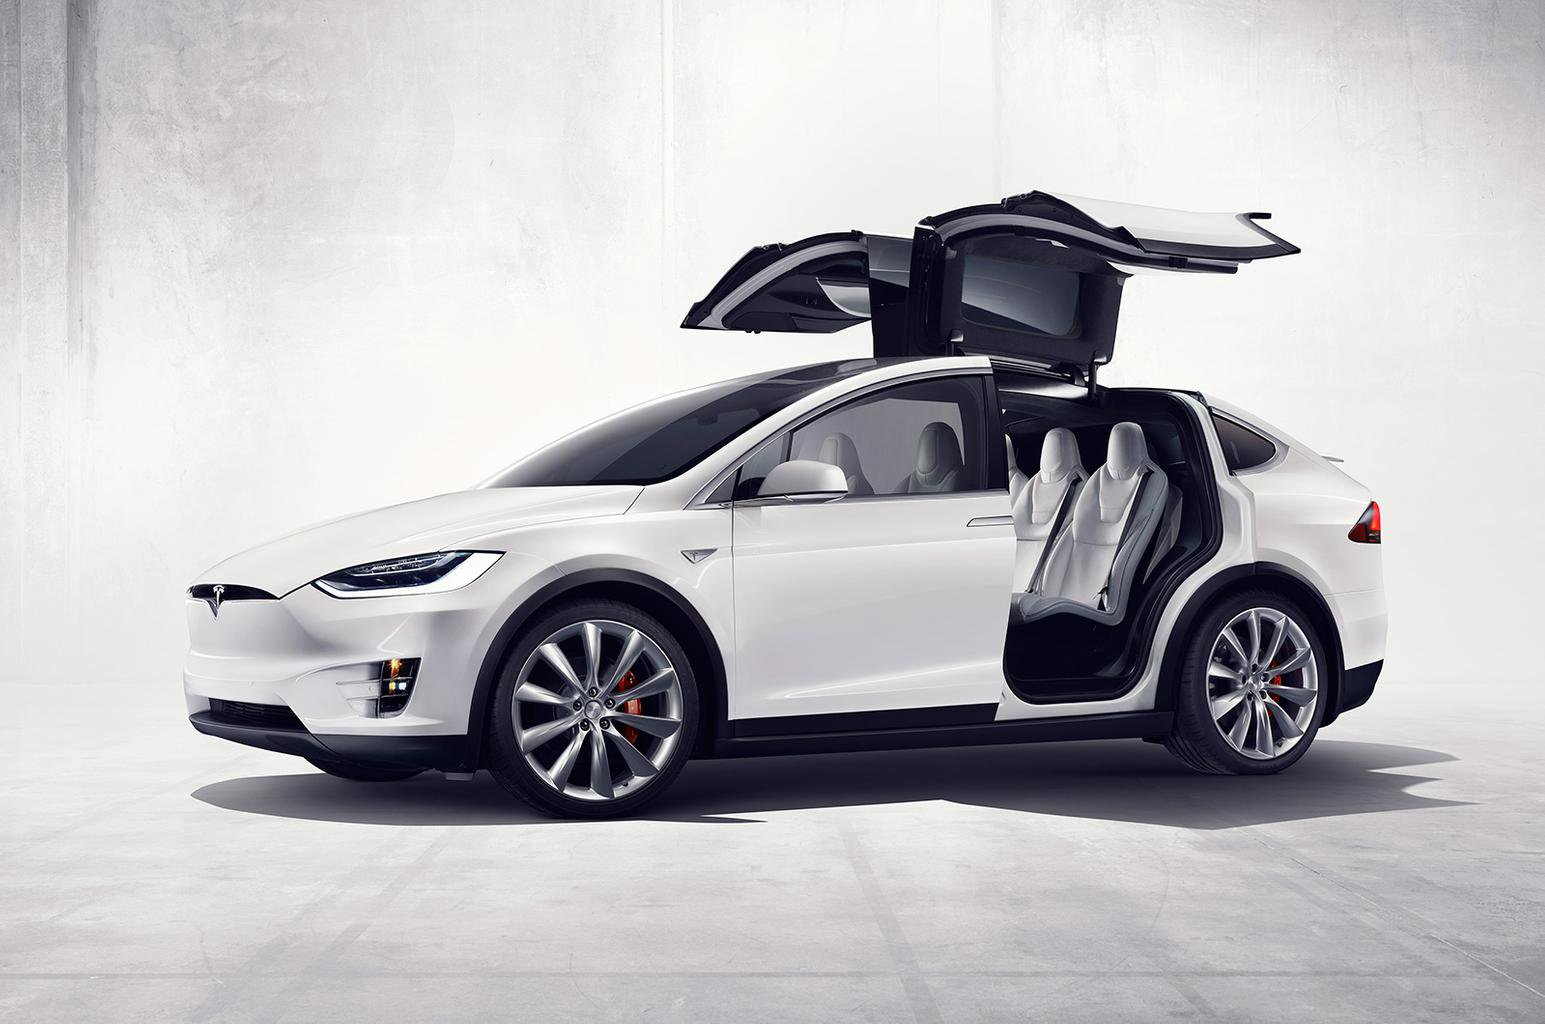 2015 Tesla Model X SUV revealed - specs, pictures and release date